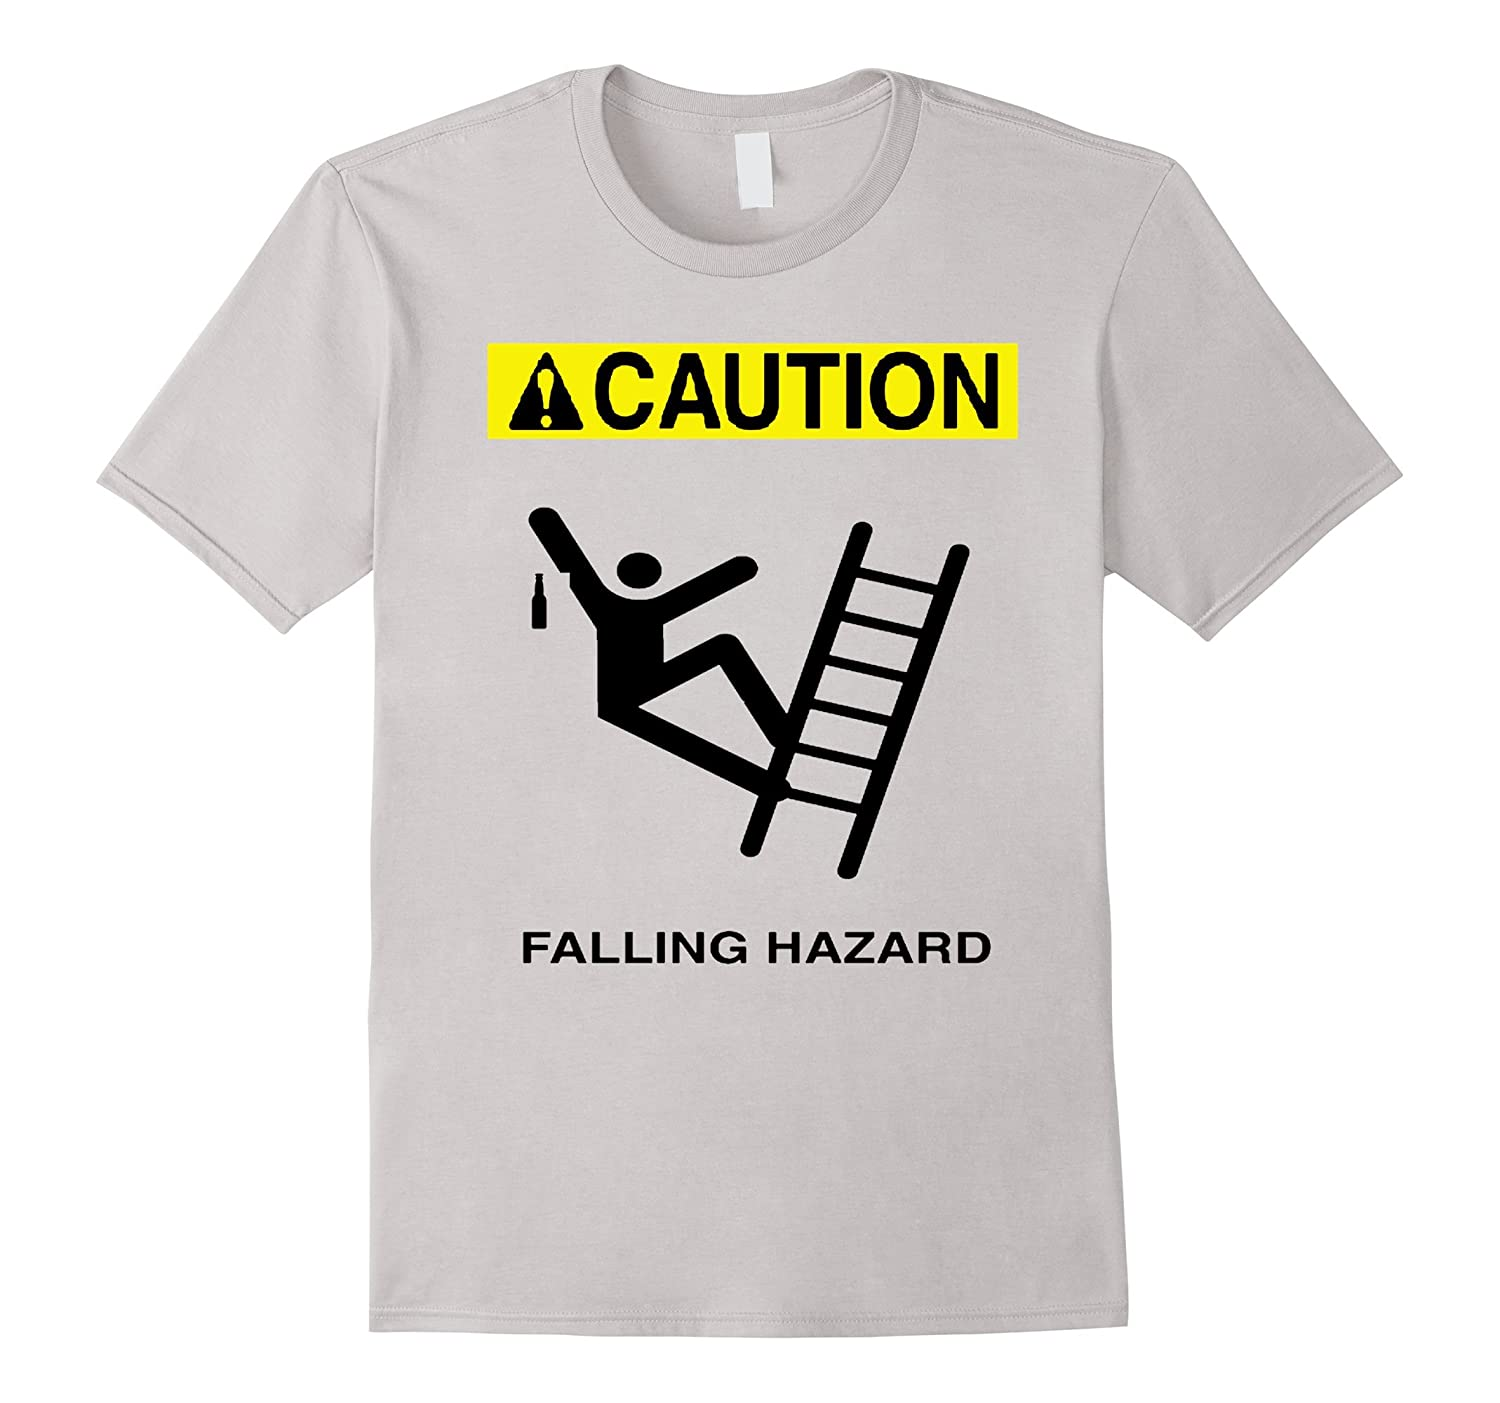 Drinking Falling Hazard Ladder Caution Shirt-BN